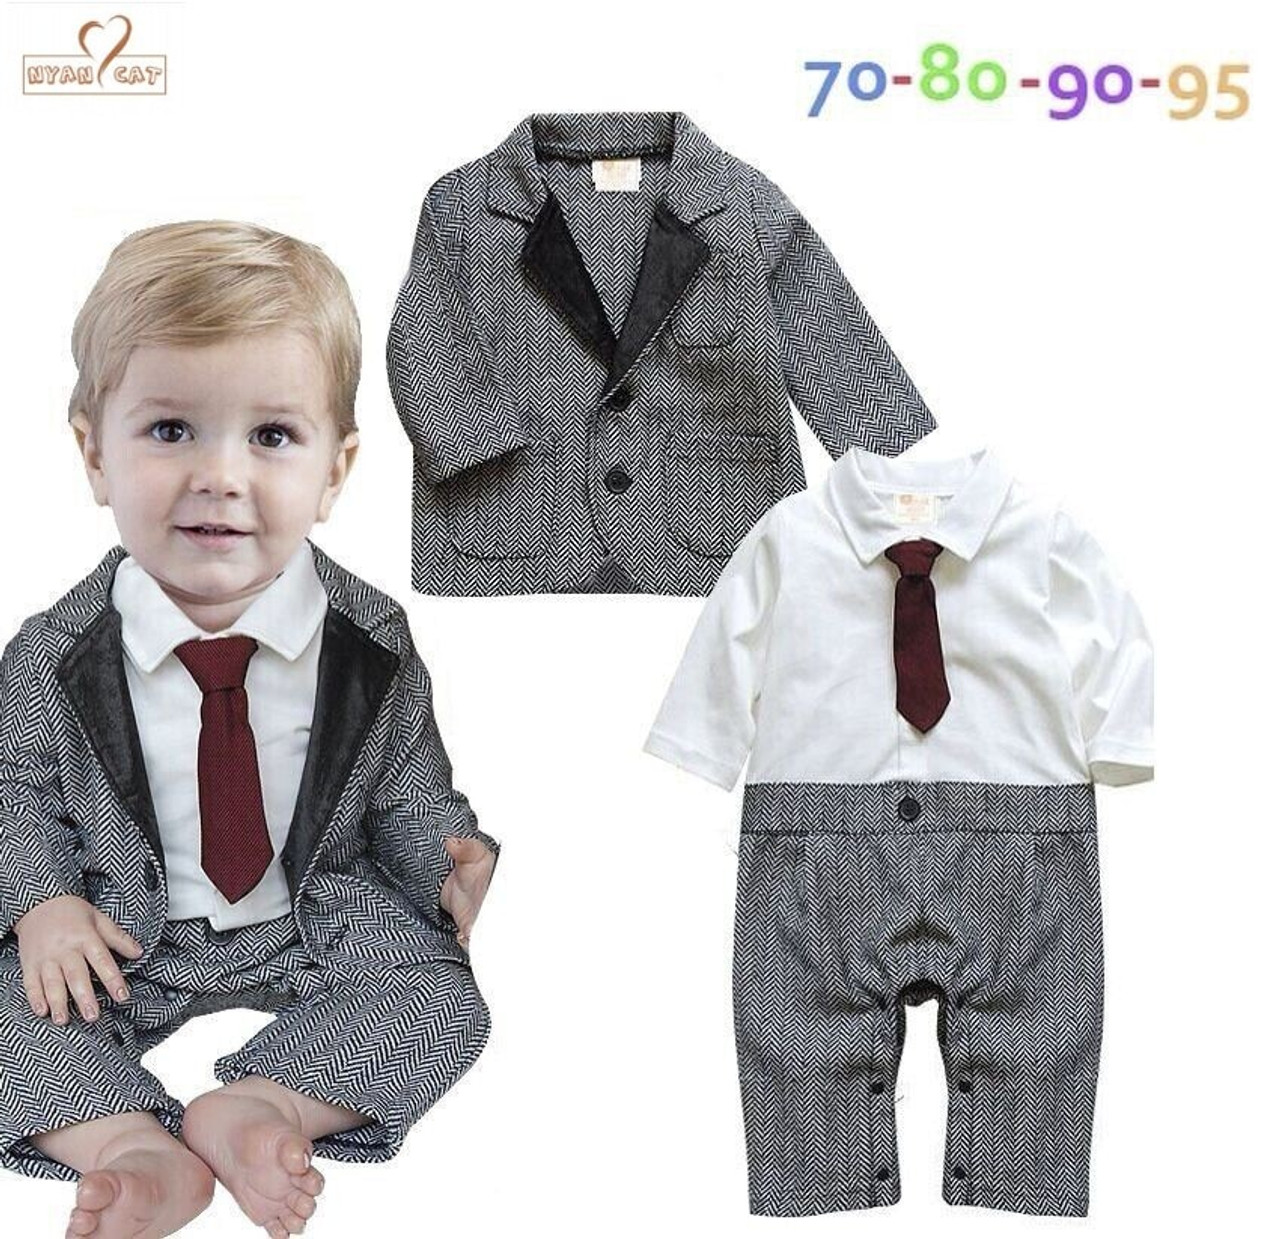 e1a5a81a437e ... NYAN CAT Baby boy clothes Gentleman Bow tie Romper Coat outfit Holiday  Wedding Party Wear Baby ...